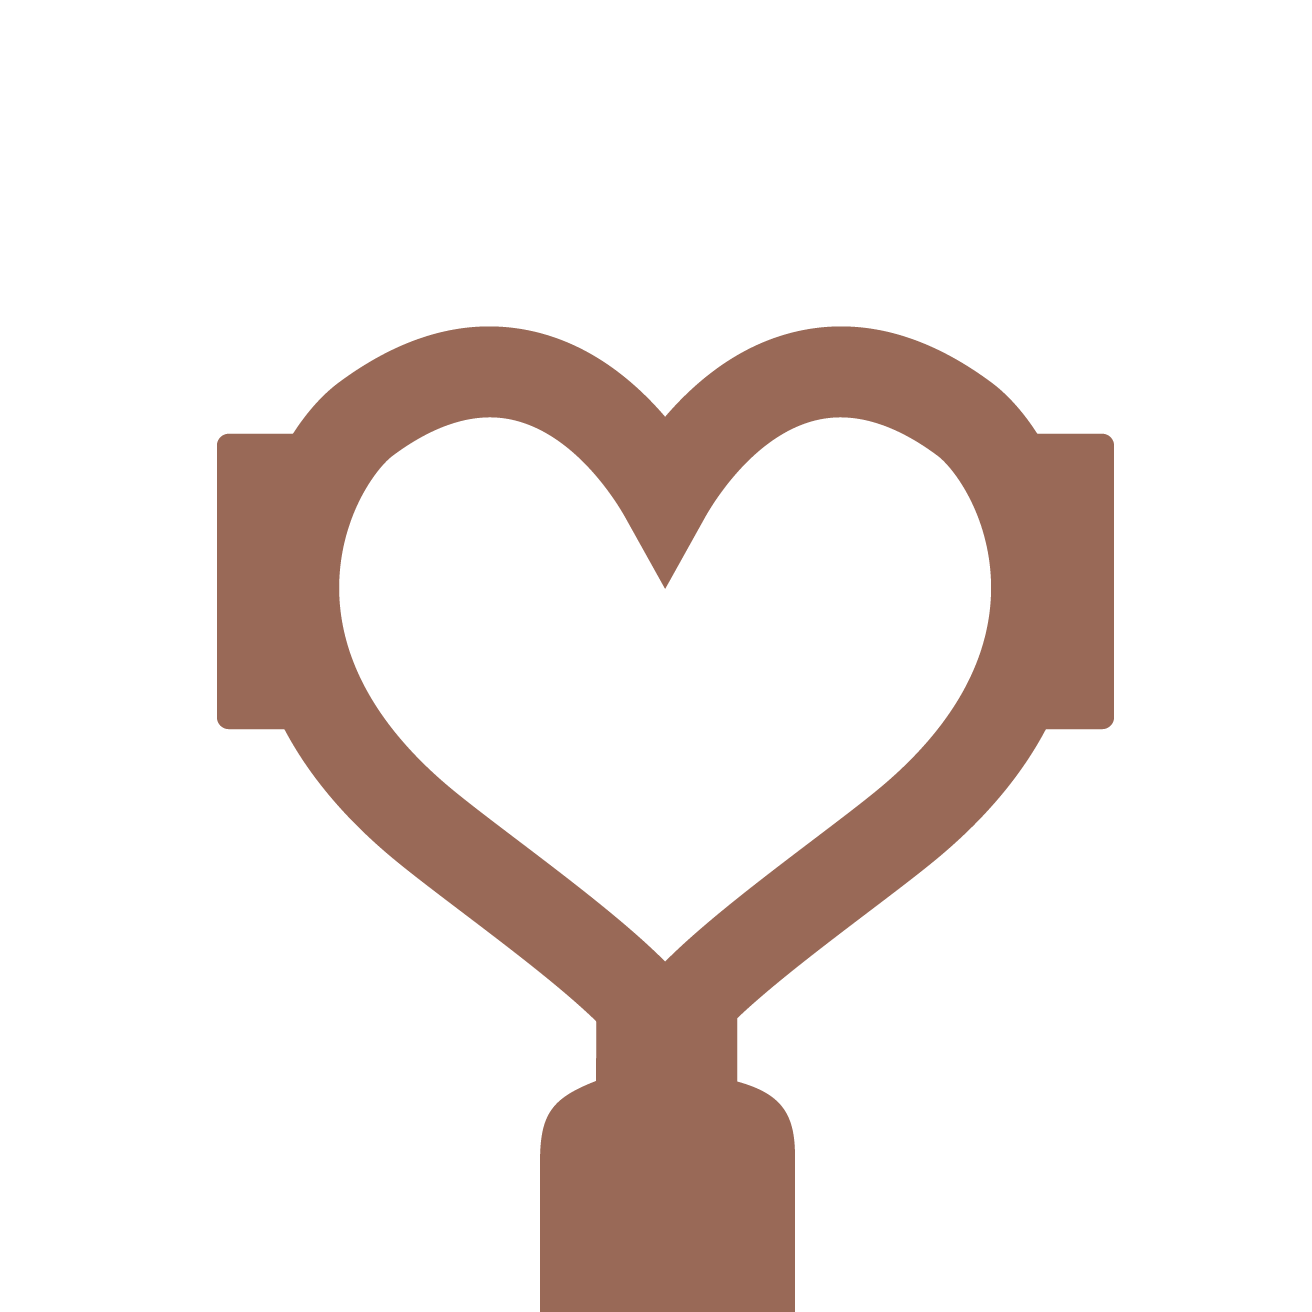 The Kruve EVOKE Carafe